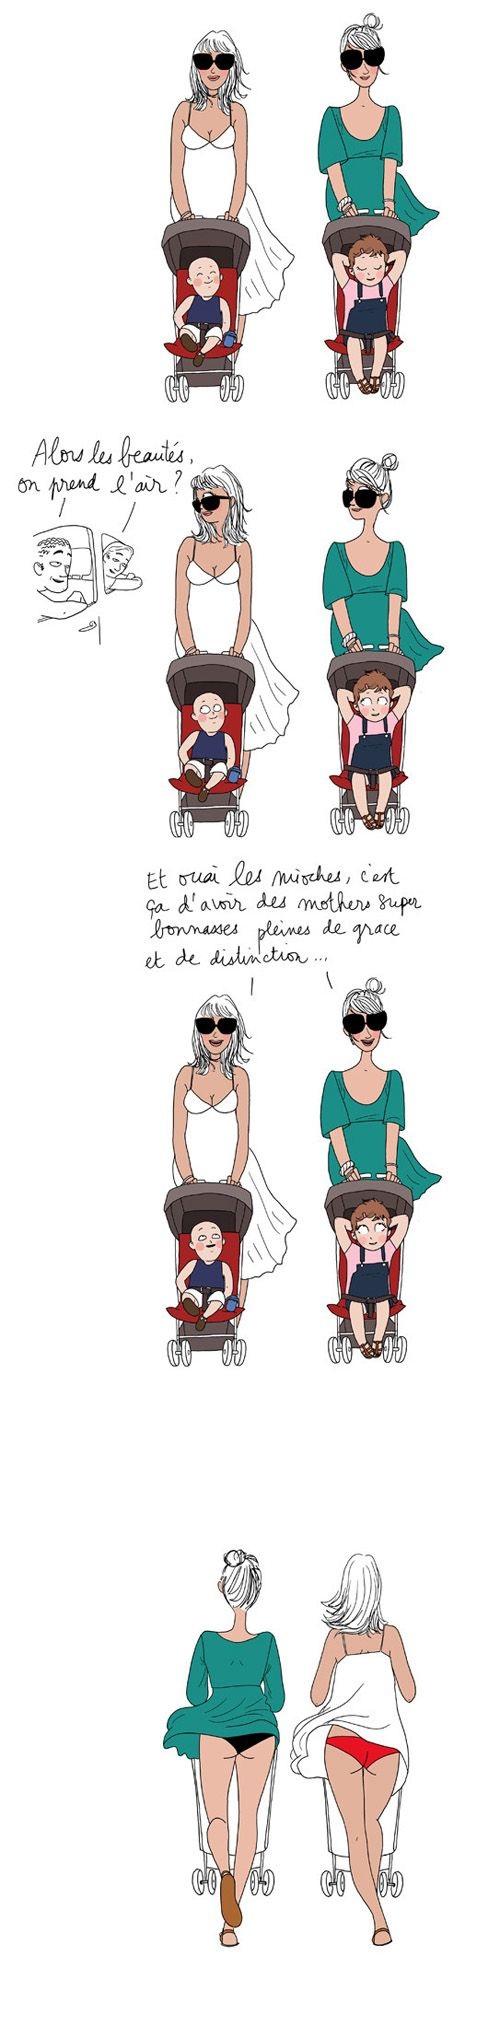 Maman au top de la distinction ... Ou pas - Margaux Motin #Humour #Maman #Illustration